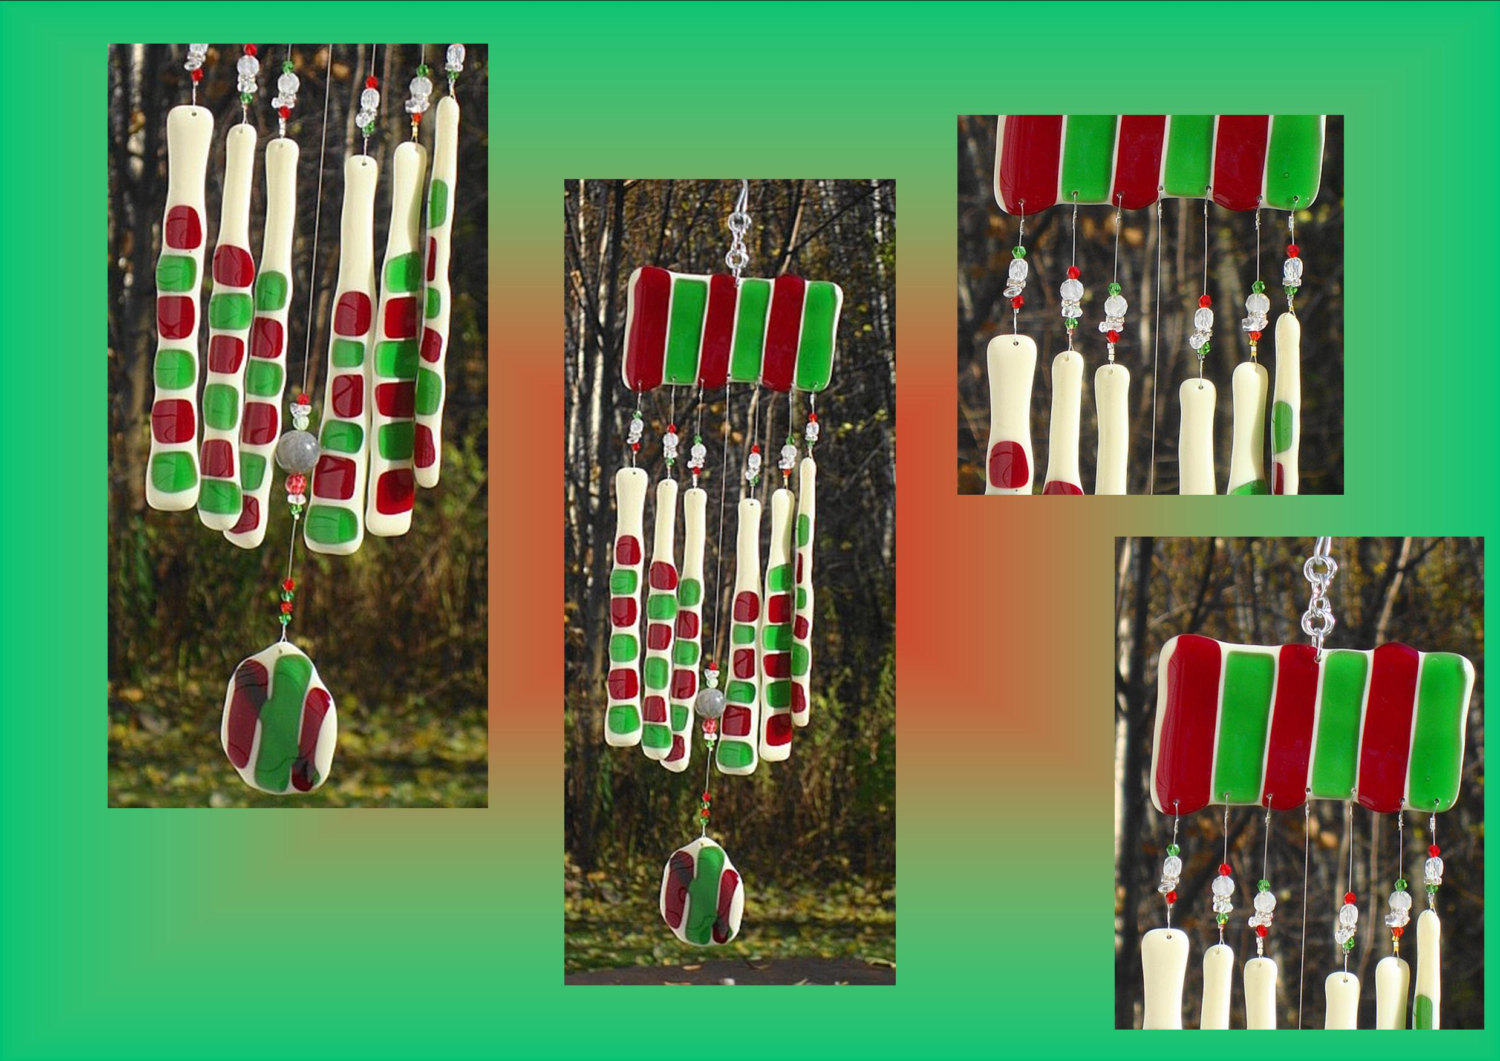 Glass Windchimes Fused Glass Windchime Red Green Windchime Candy Canes Garden Decor Stained Glass Windchime Window Suncatchers